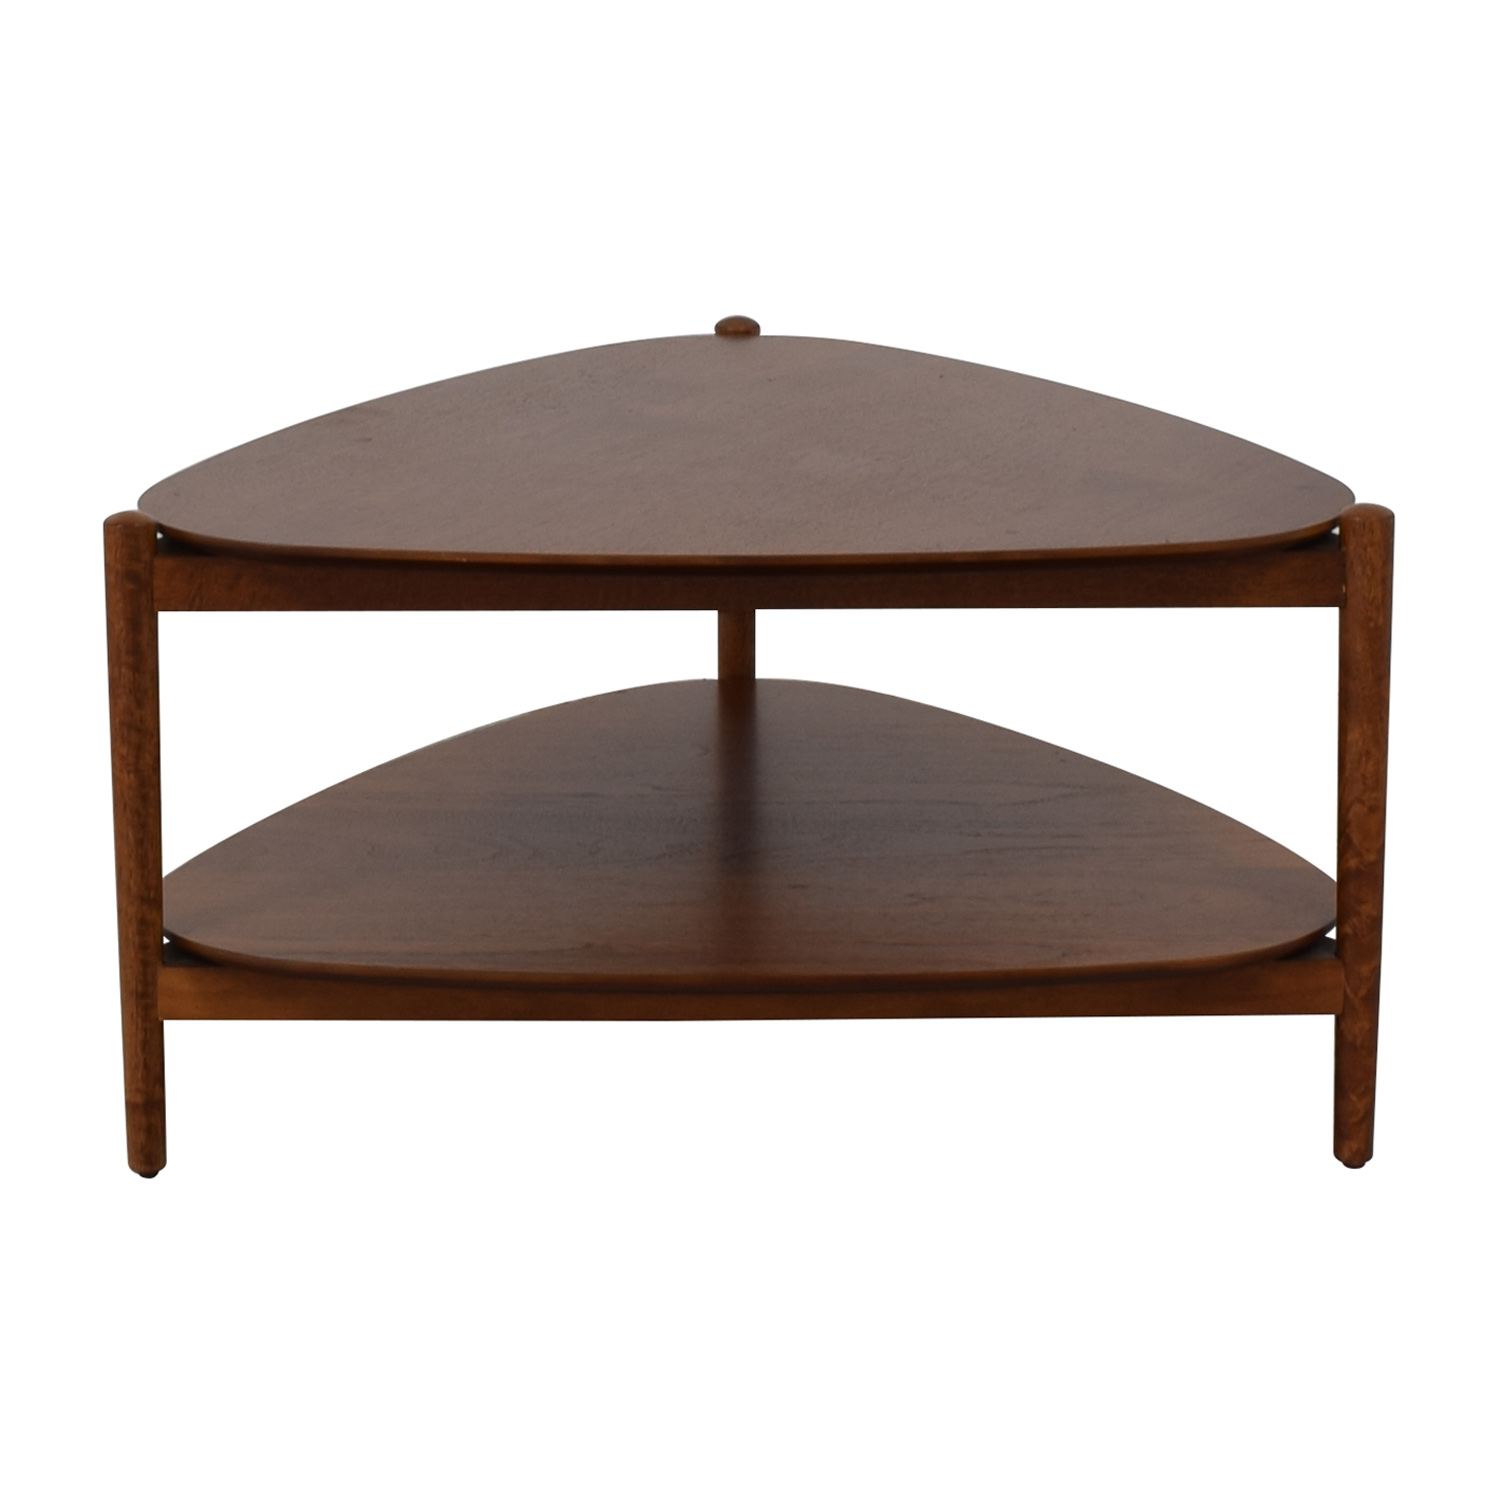 West Elm West Elm Retro Tripod Coffee Table nj